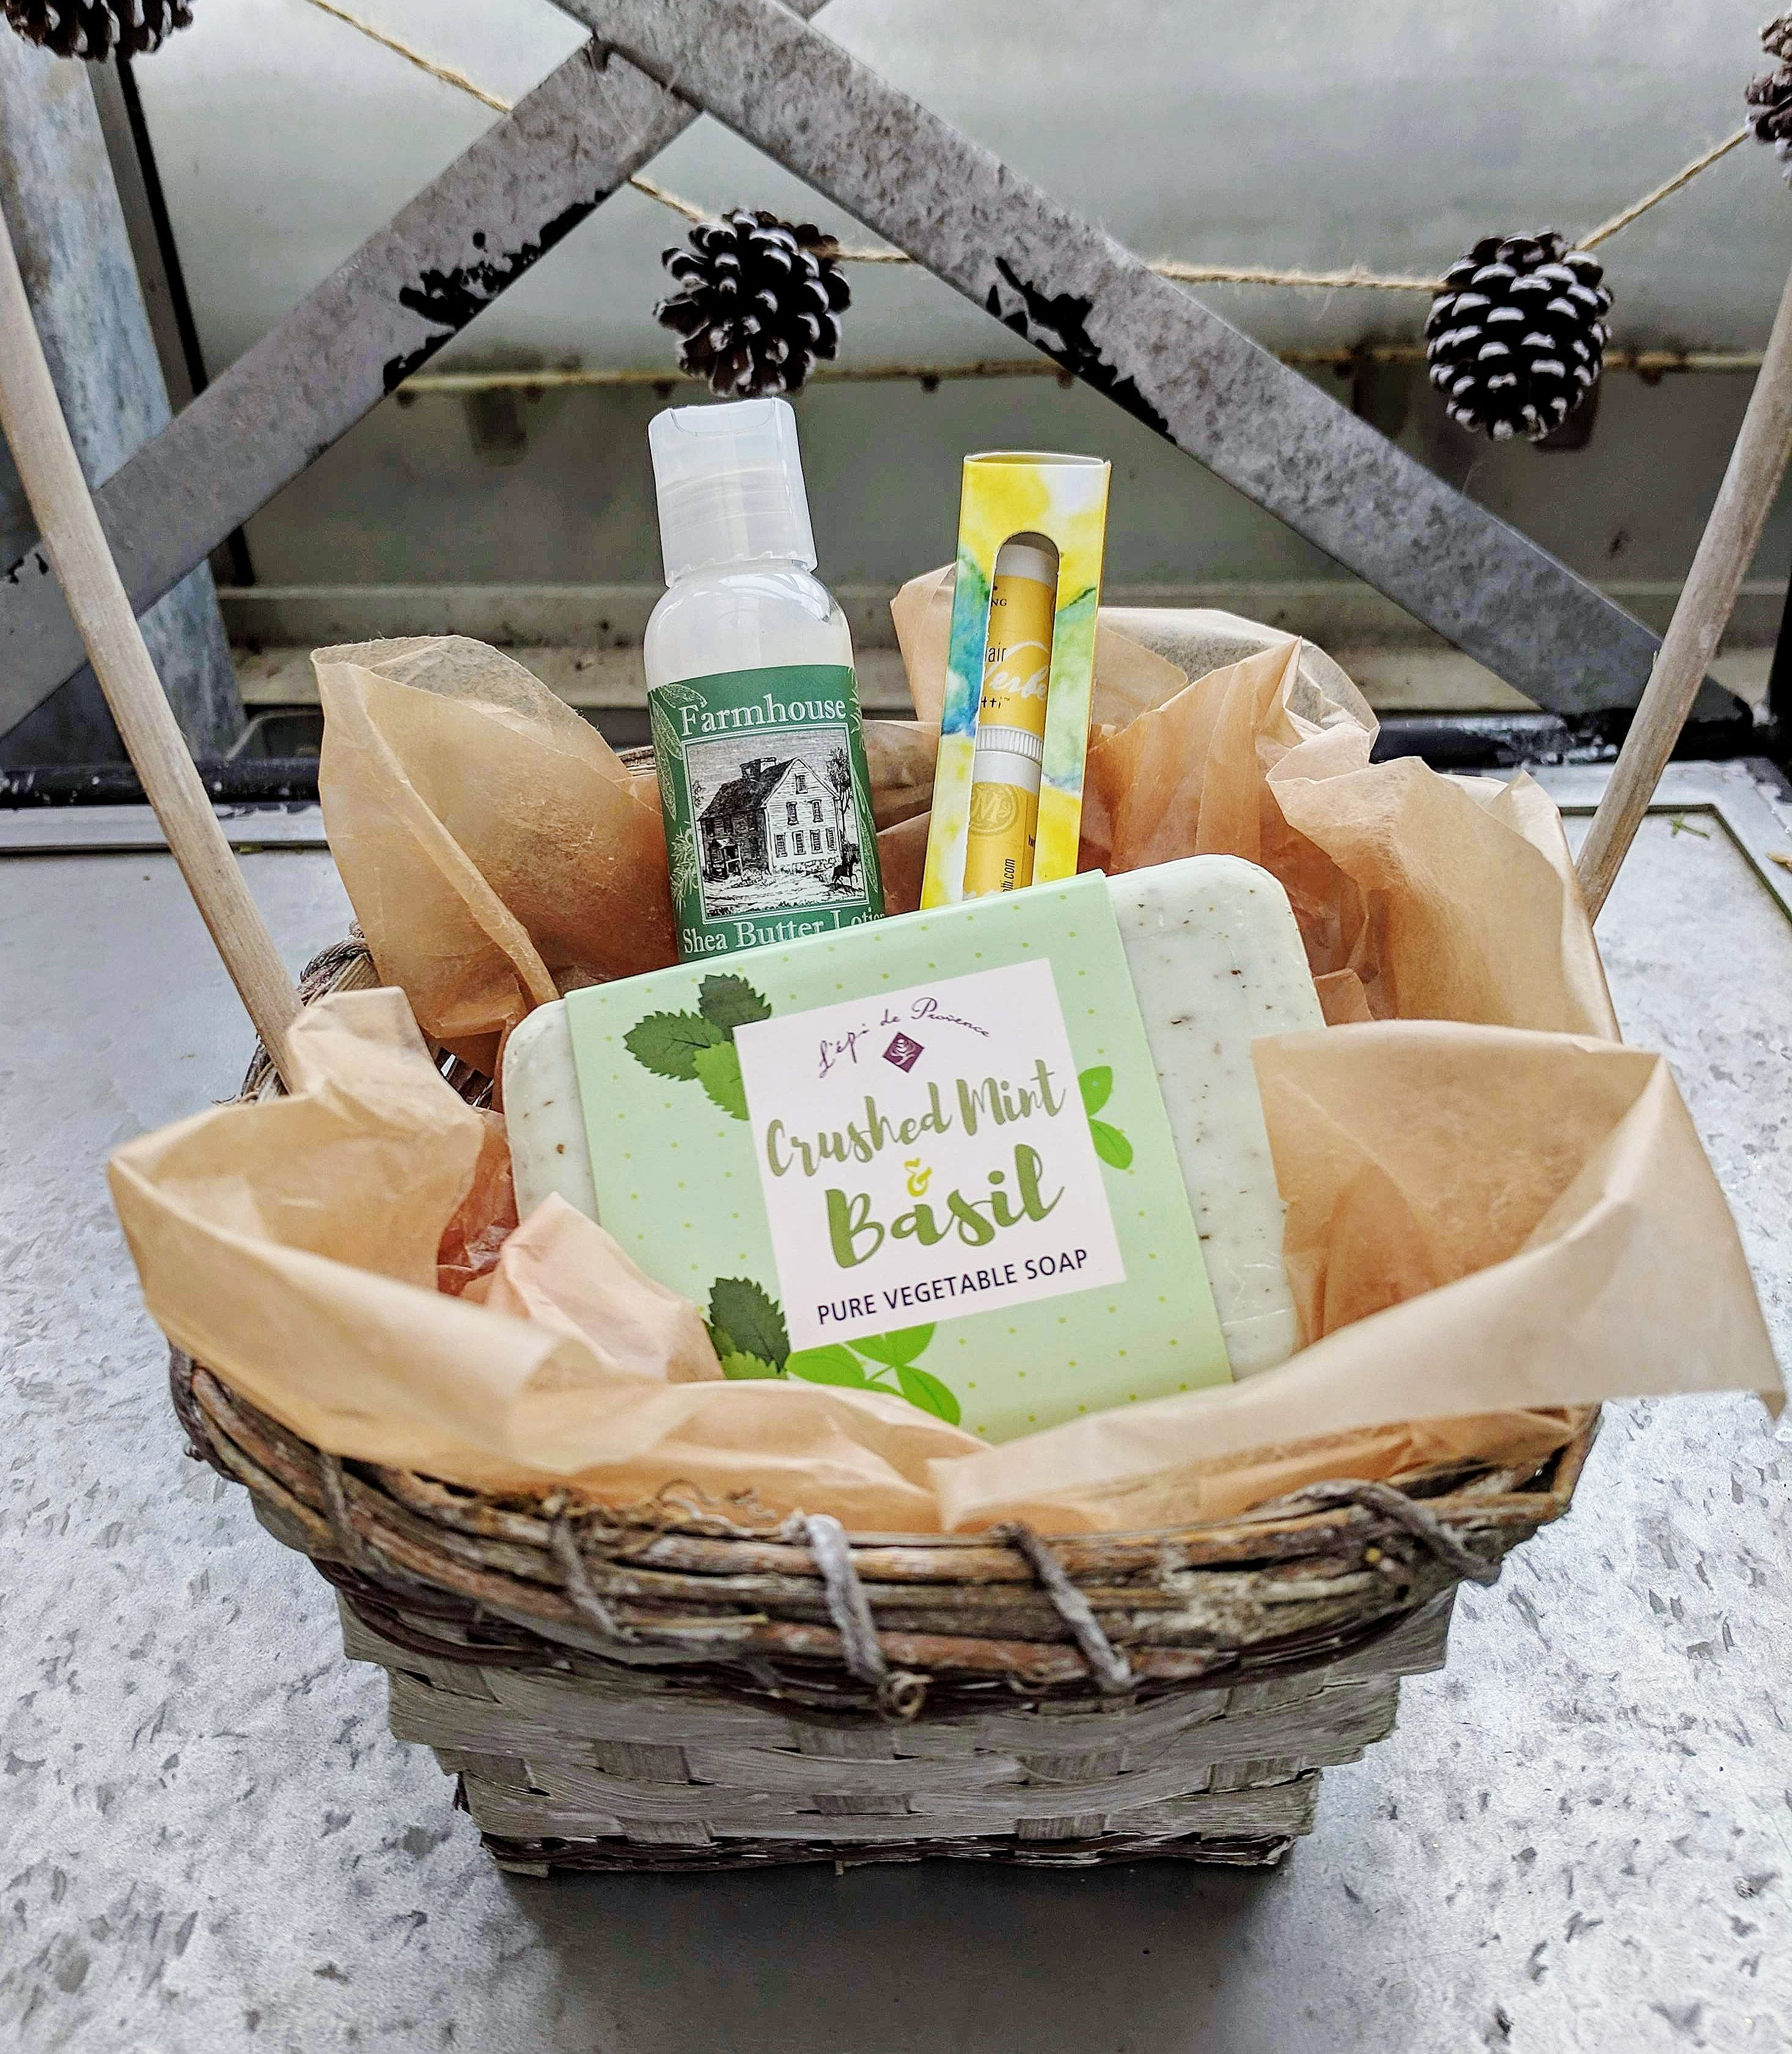 body care items like lotion, soap, lip care in a basket